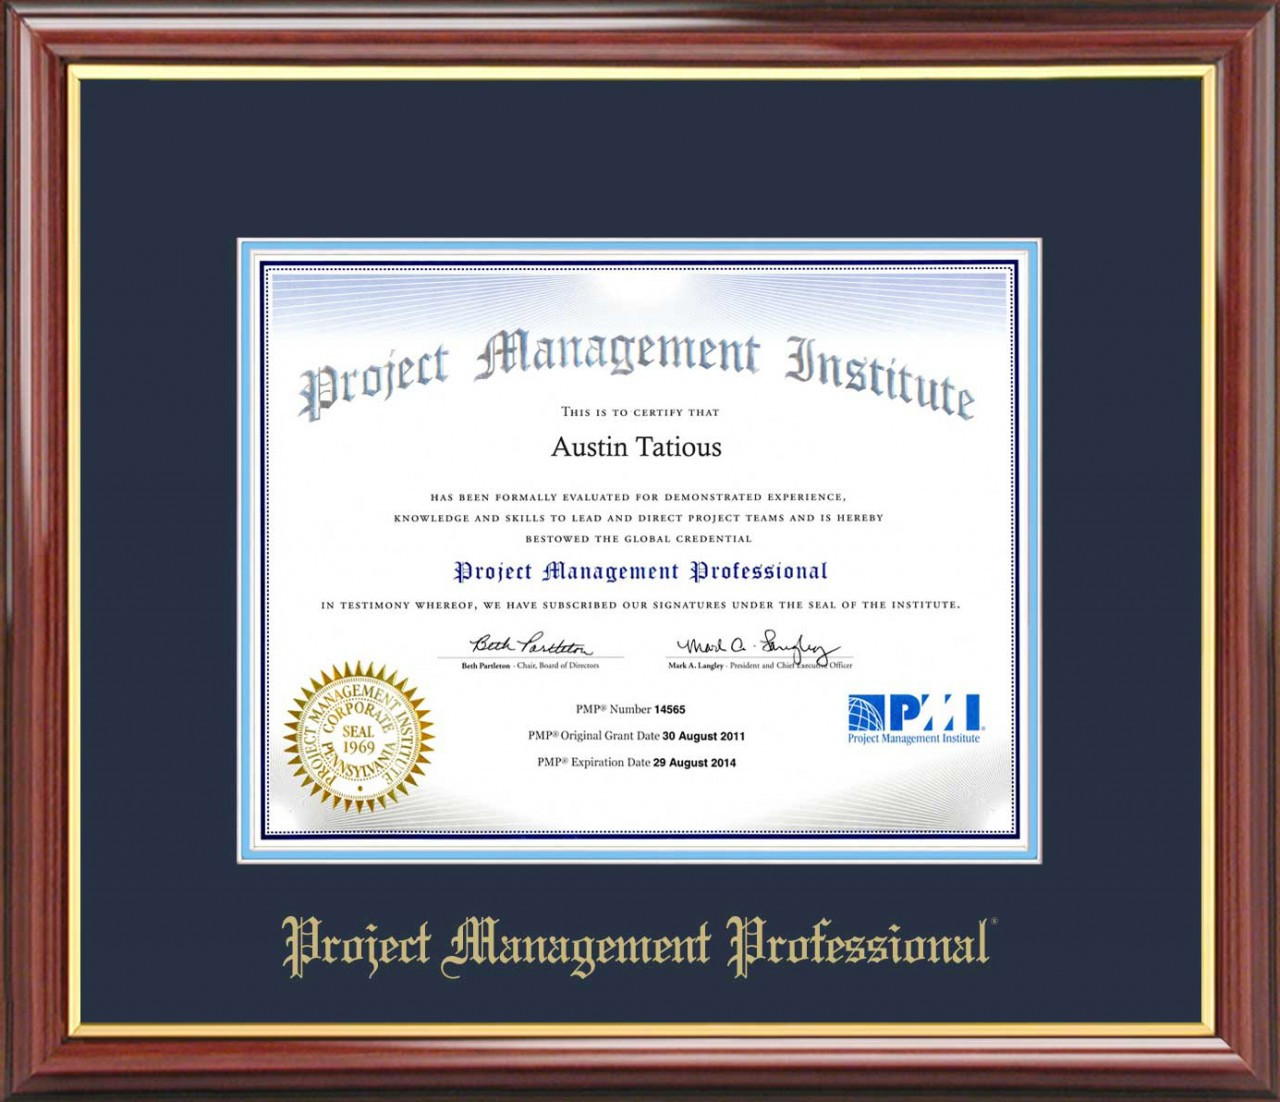 Pmp 174 Certificate Frame Mahogany With Navy Mat